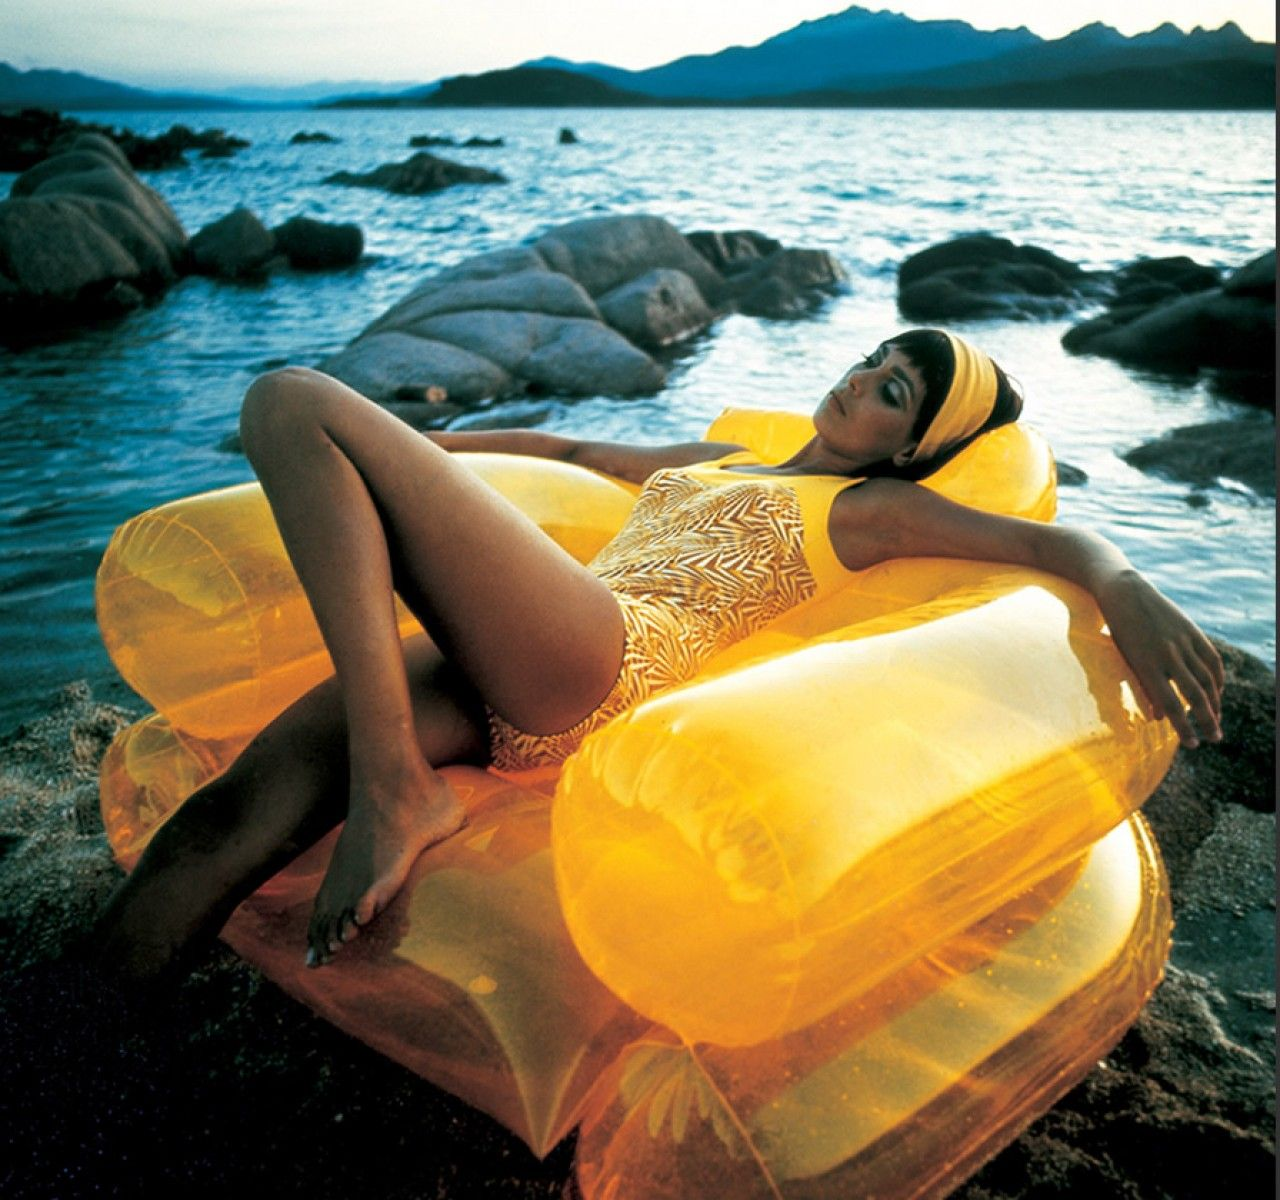 Zanotta Online Shop in 2020 Inflatable chair, Inflatable